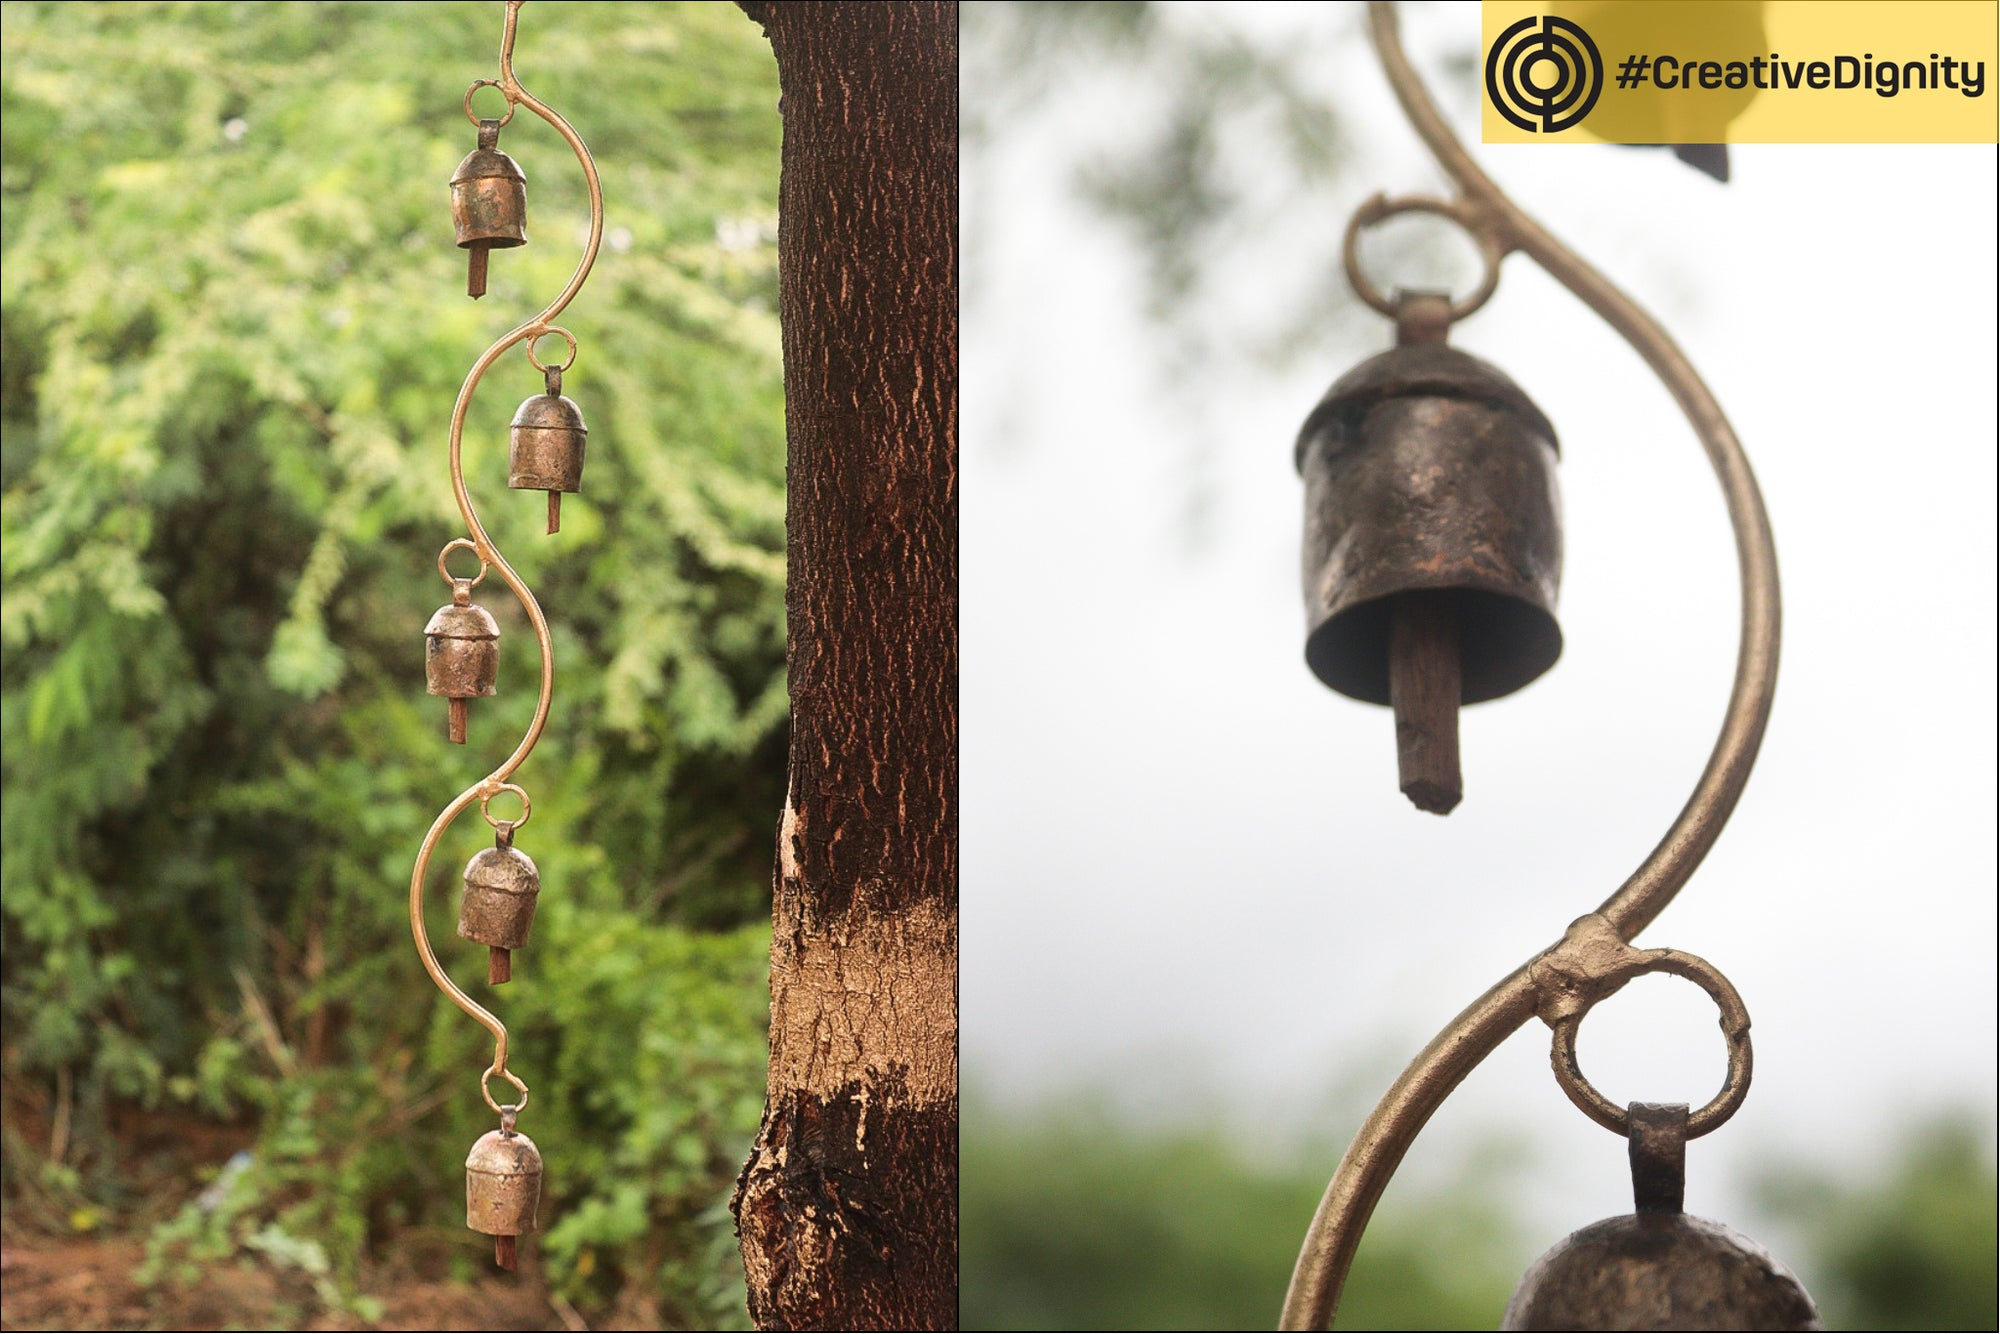 Kutch Copper Coated 5 Bell Hanging by Janmamad Luhar